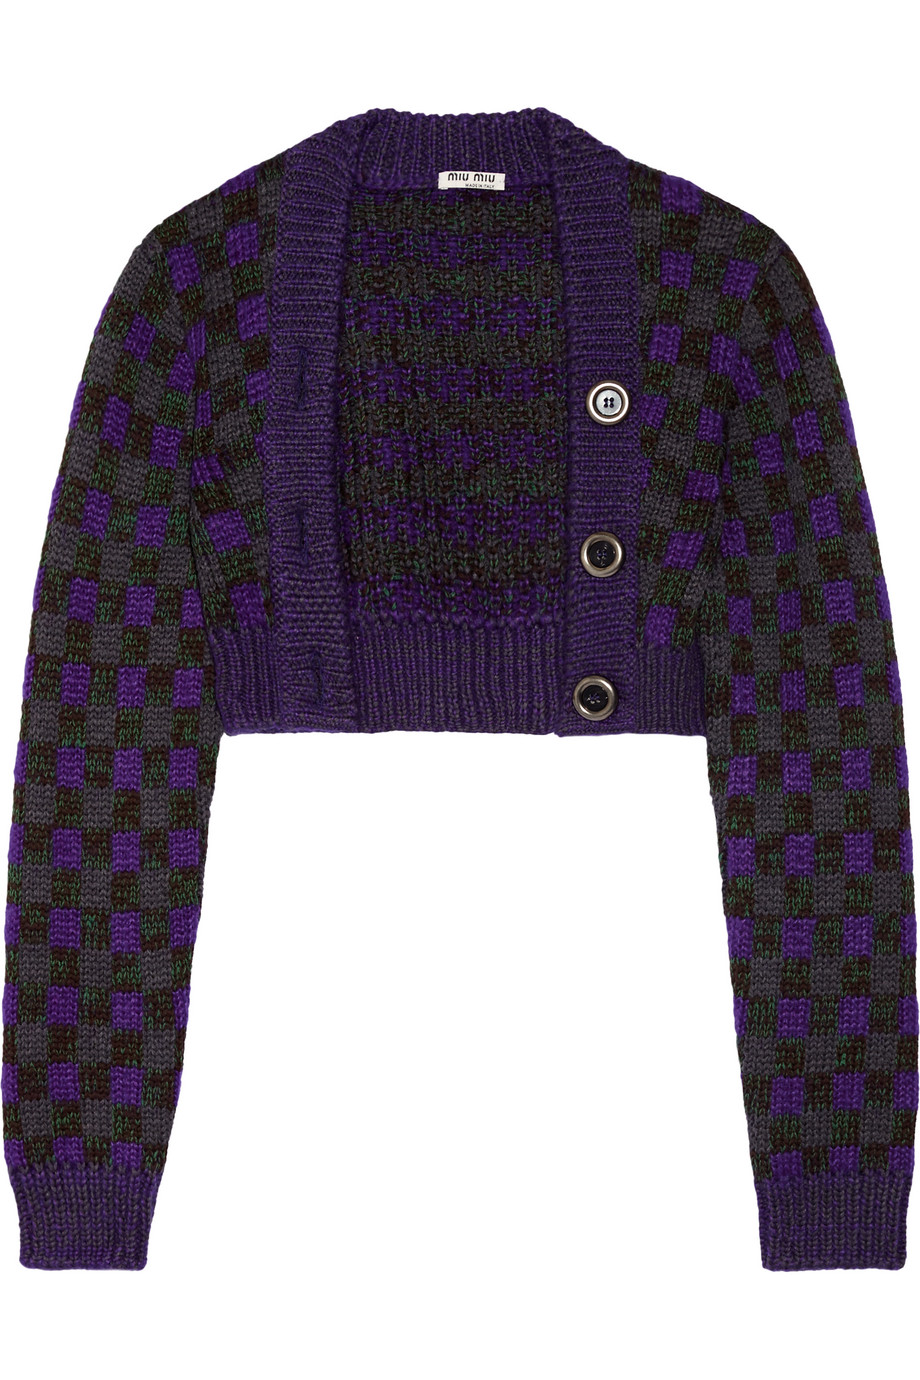 Miu Miu Cropped Checked Wool-Blend Cardigan, Size: 38